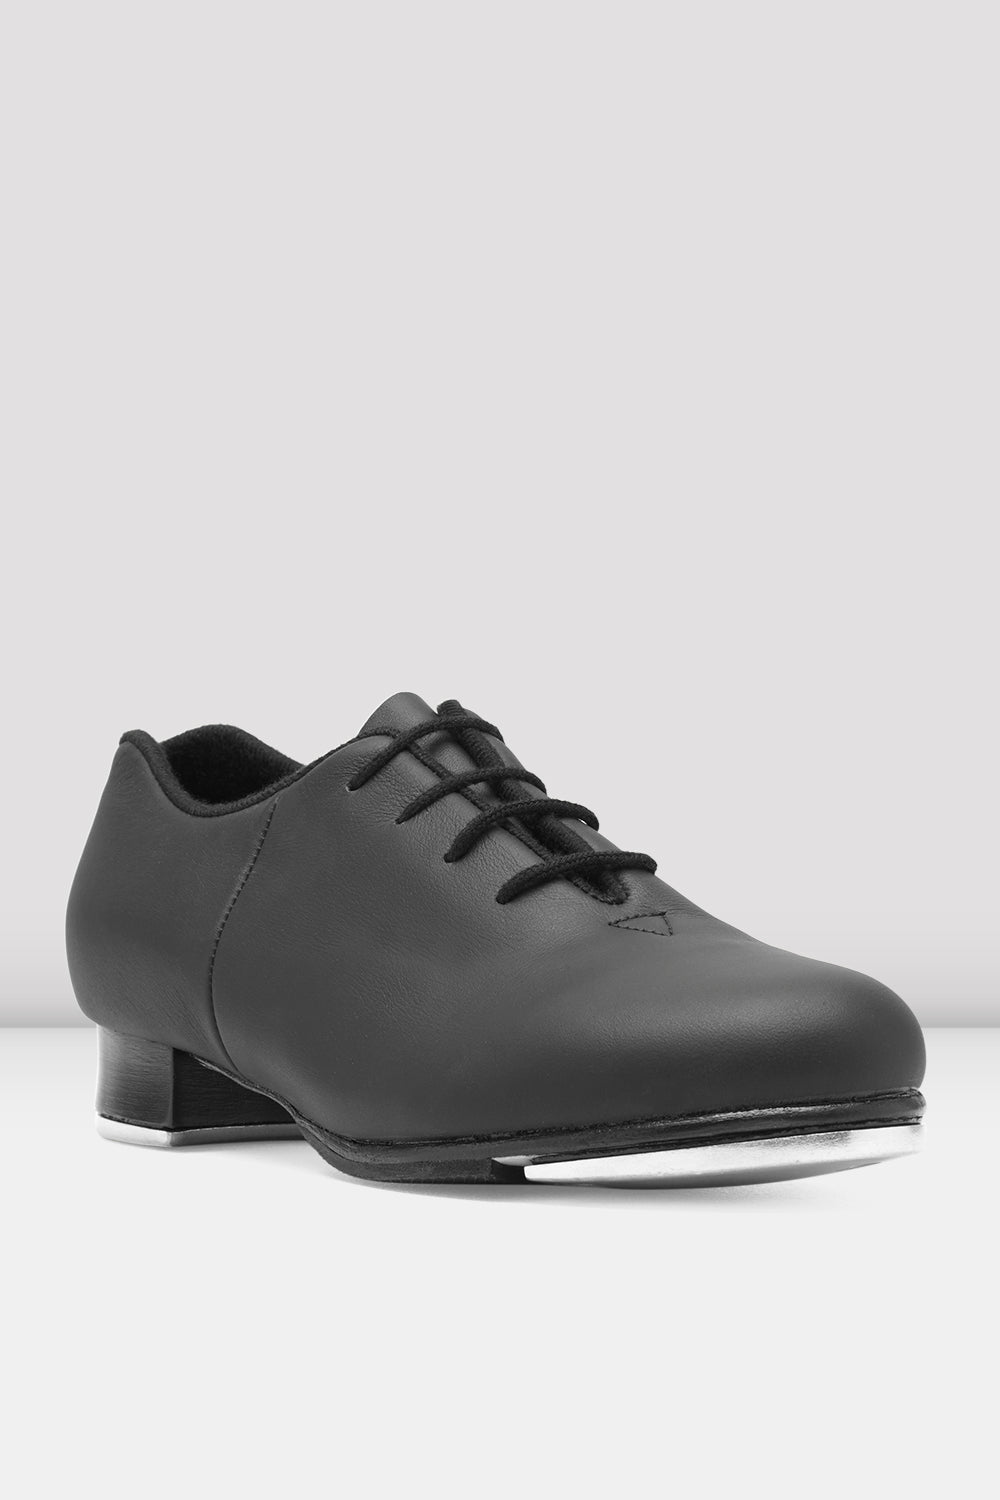 Ladies Audeo Jazz Tap Leather Tap Shoes - BLOCH US